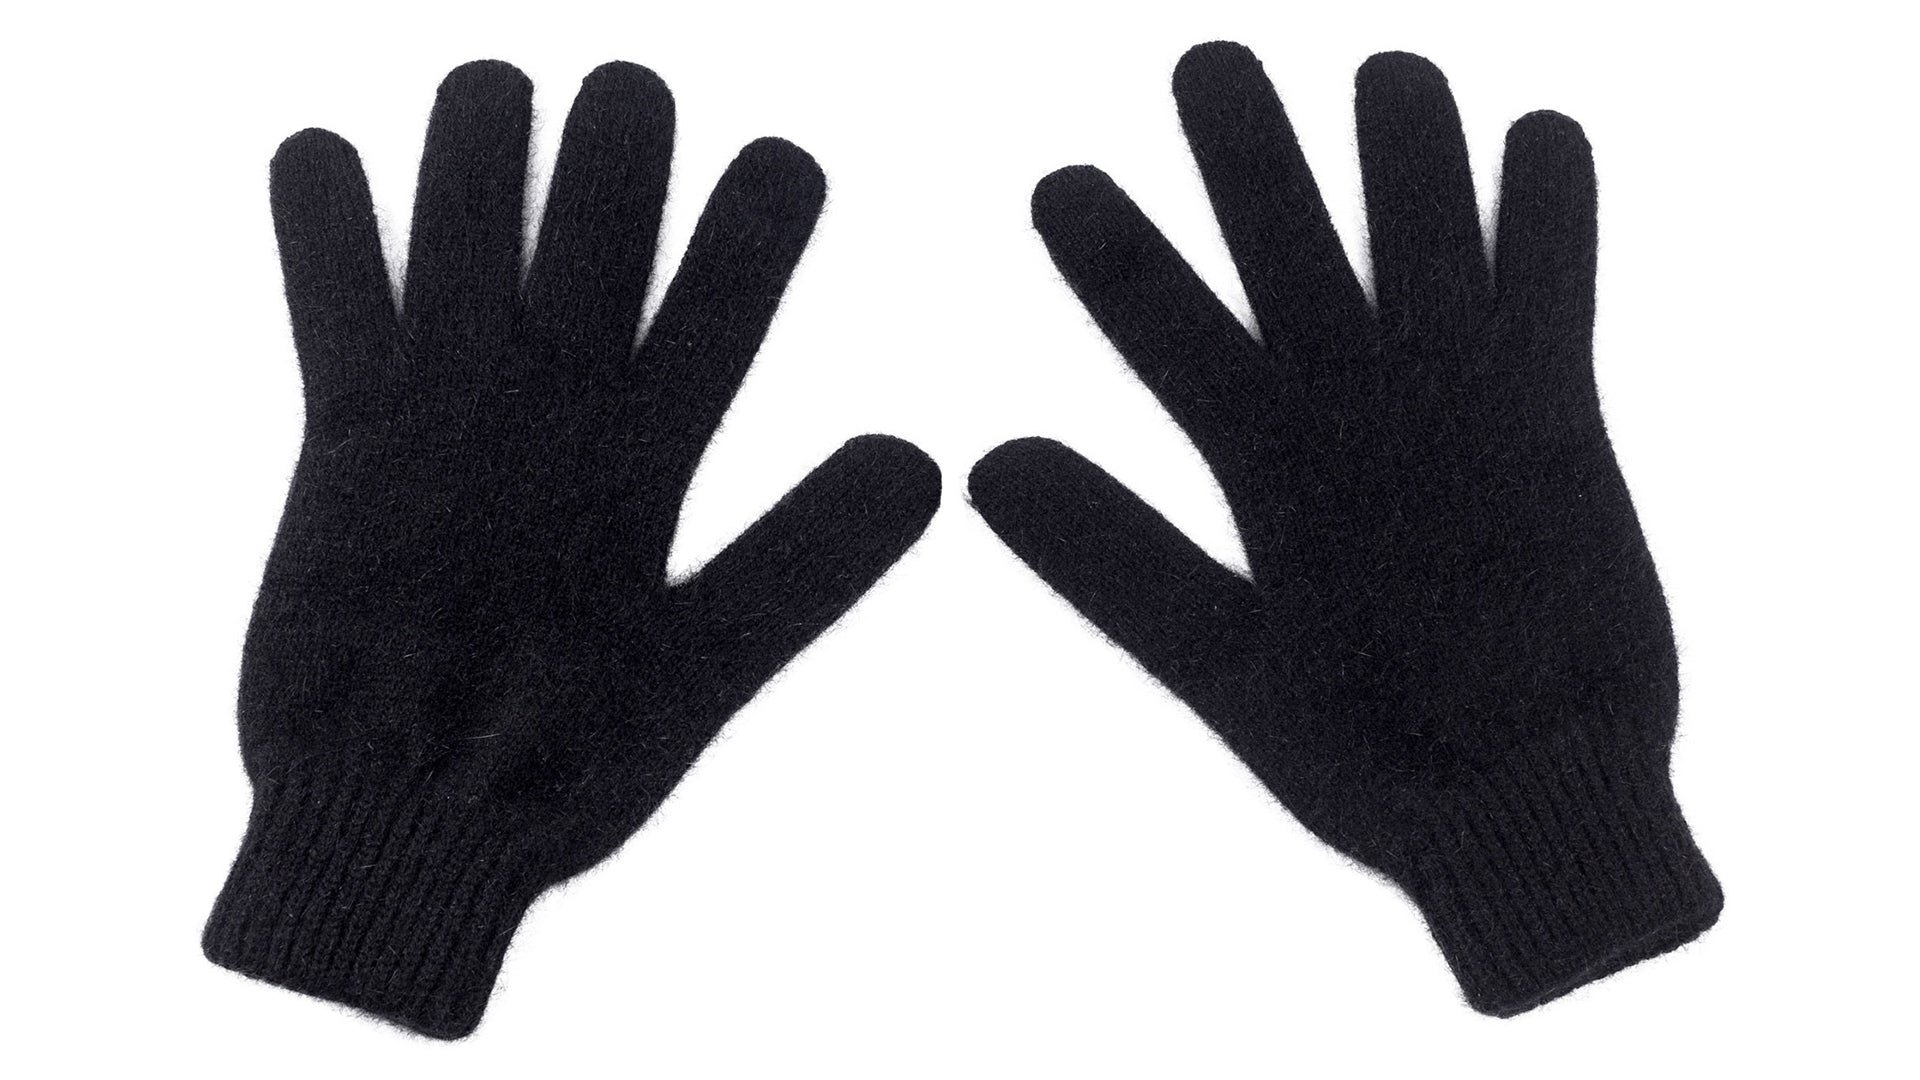 45c78169d7c  PossumDown Gloves are non-returnable if they have been removed from the  packaging.